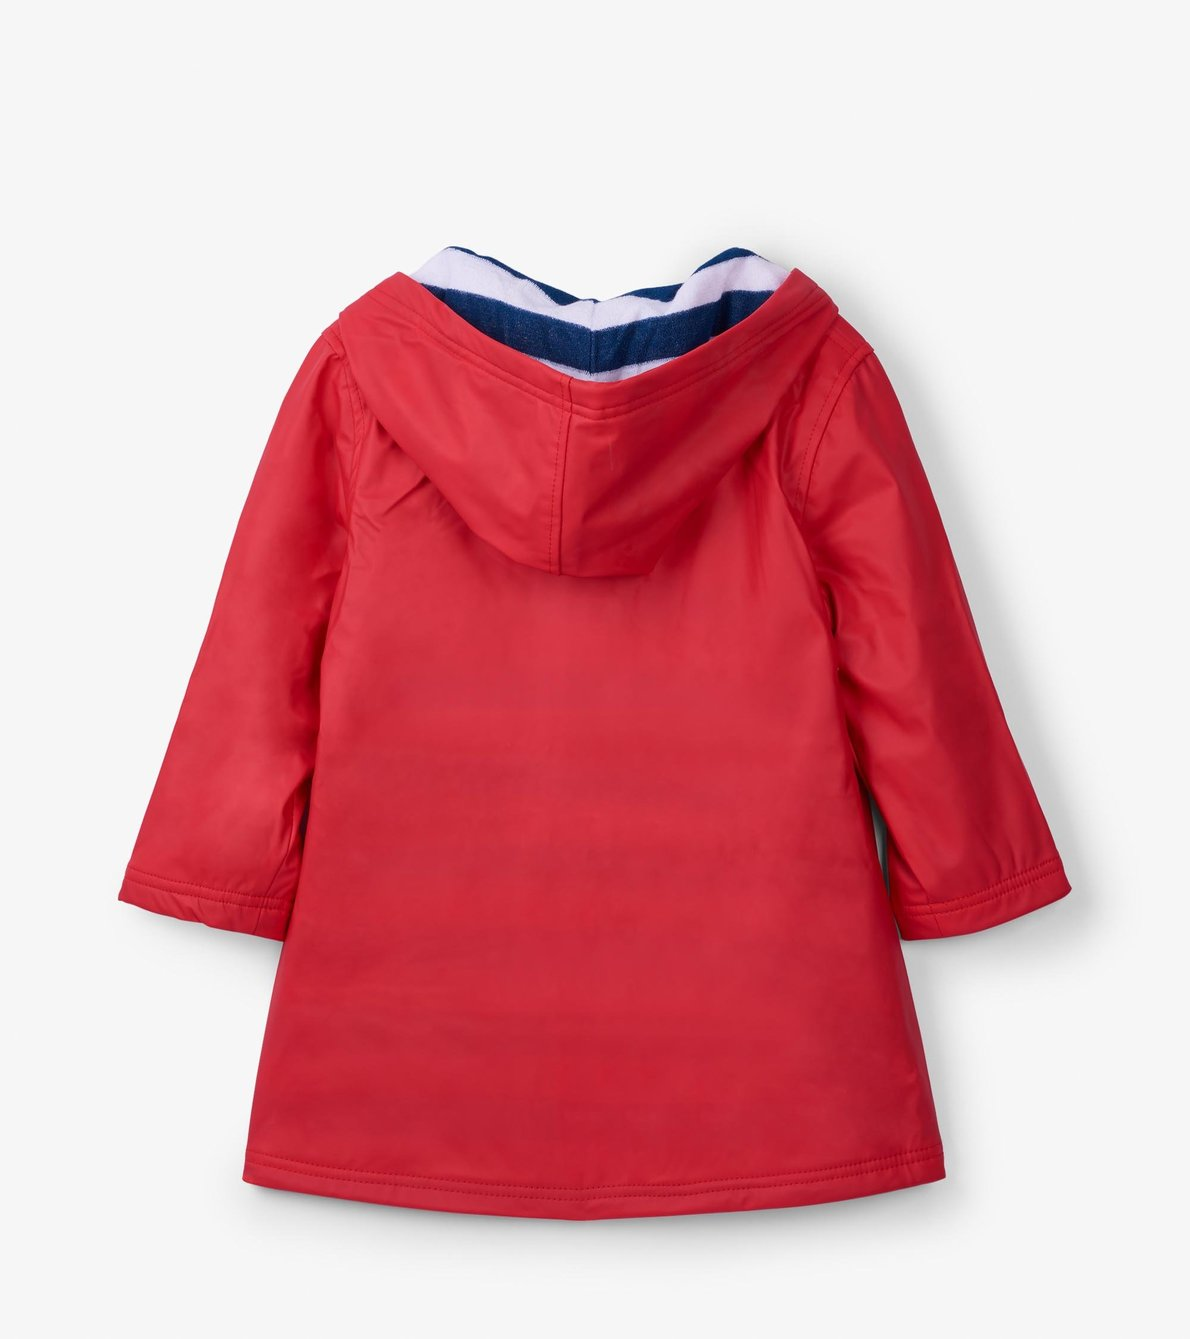 View larger image of Red with Navy Stripe Lining Splash Jacket